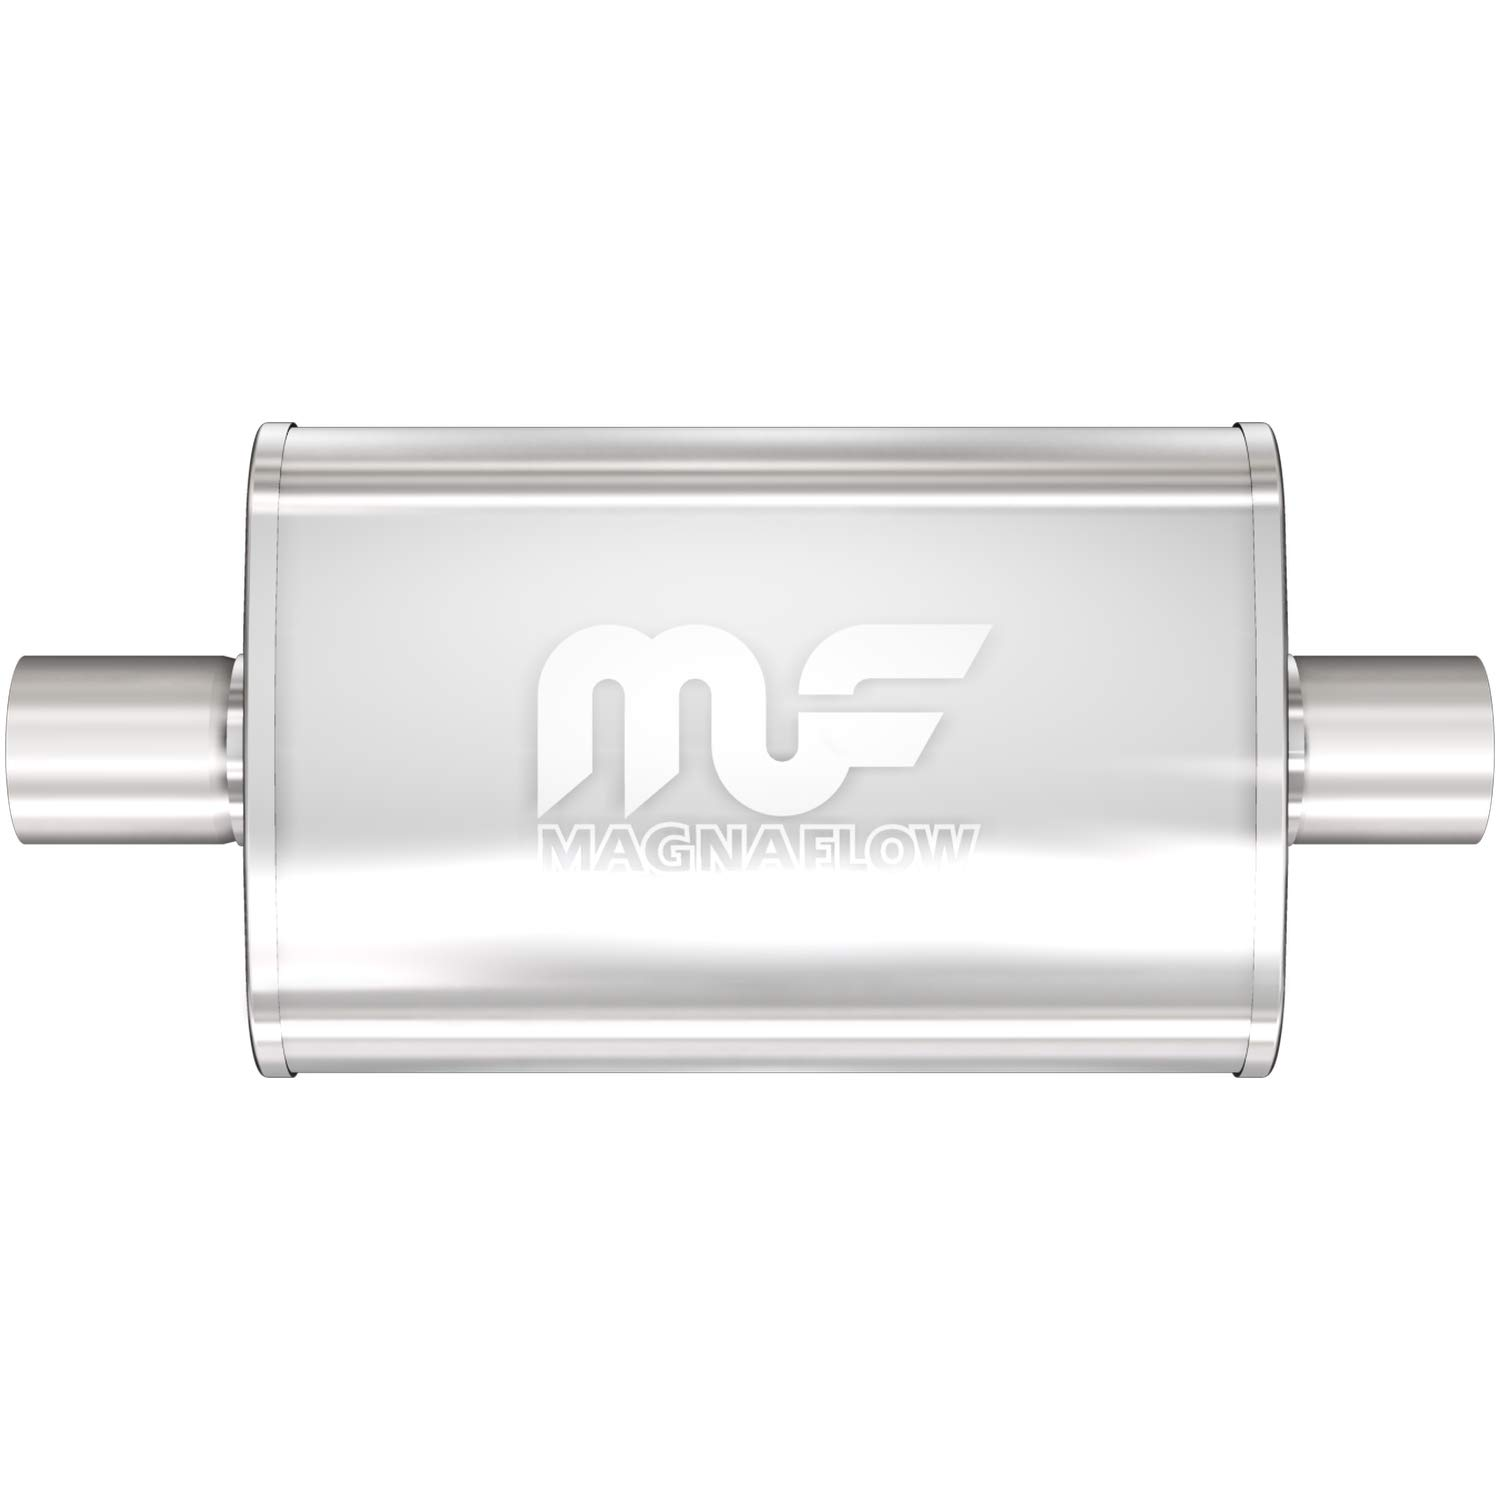 Universal 7109 Car Exhaust Tip Trim End Pipe Tail Sport Muffler Stainless Steel Chrome